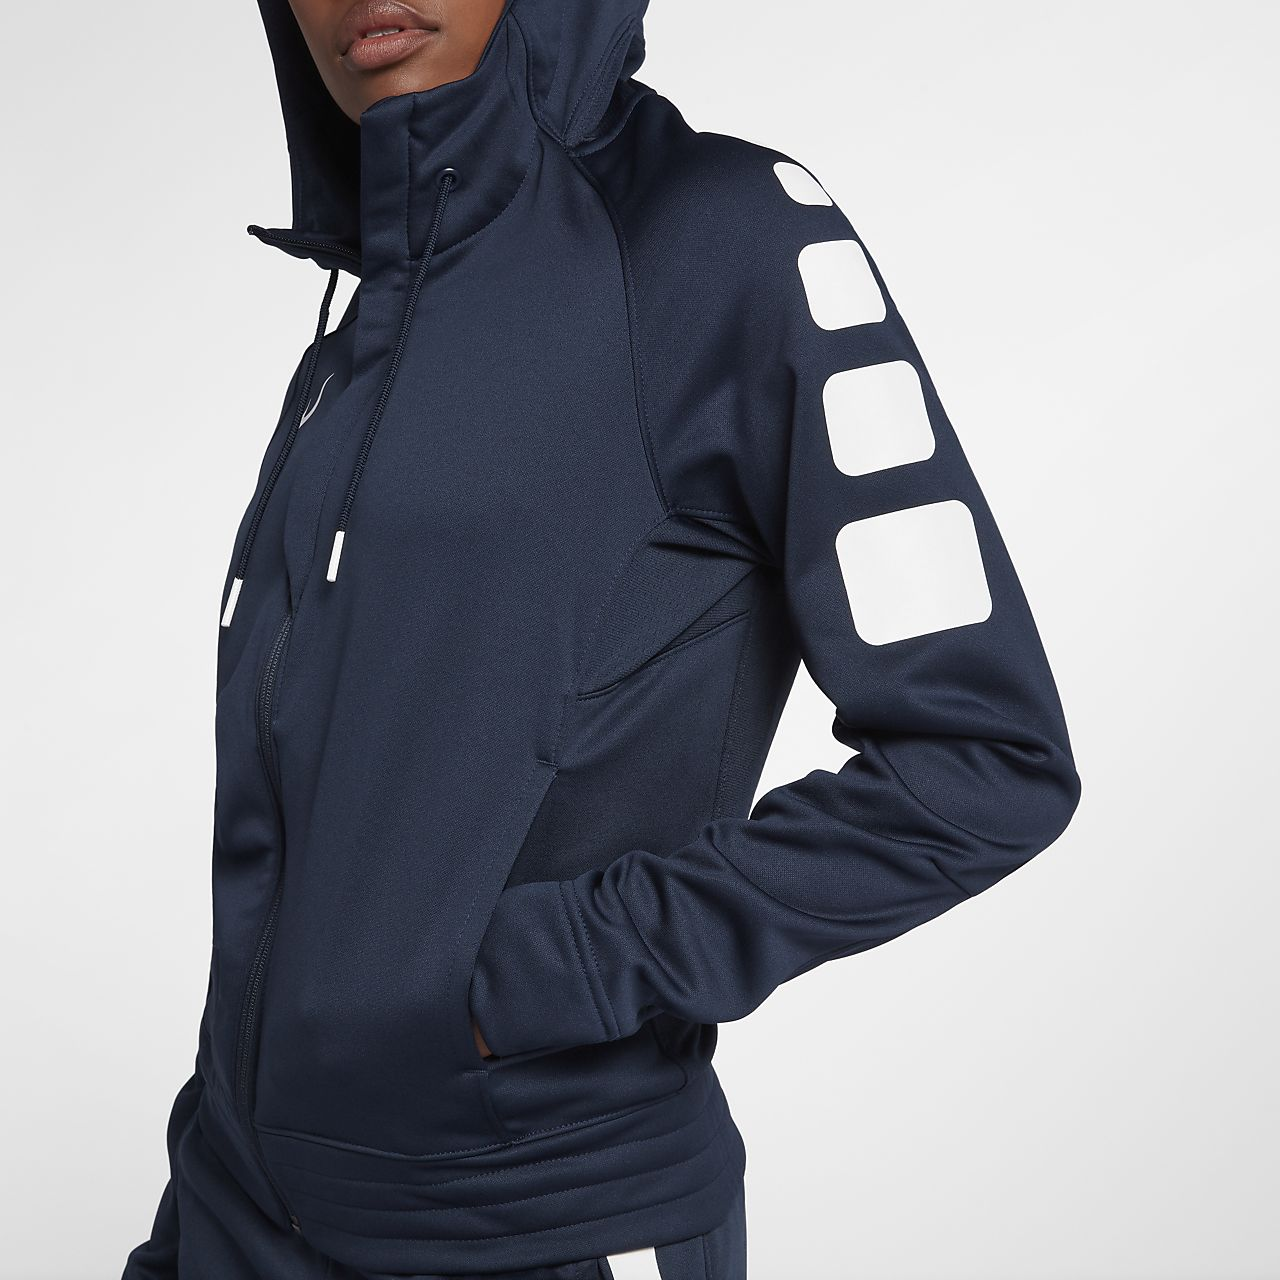 e55d2fb6070 Nike Therma Elite Women's Basketball Hoodie. Nike.com